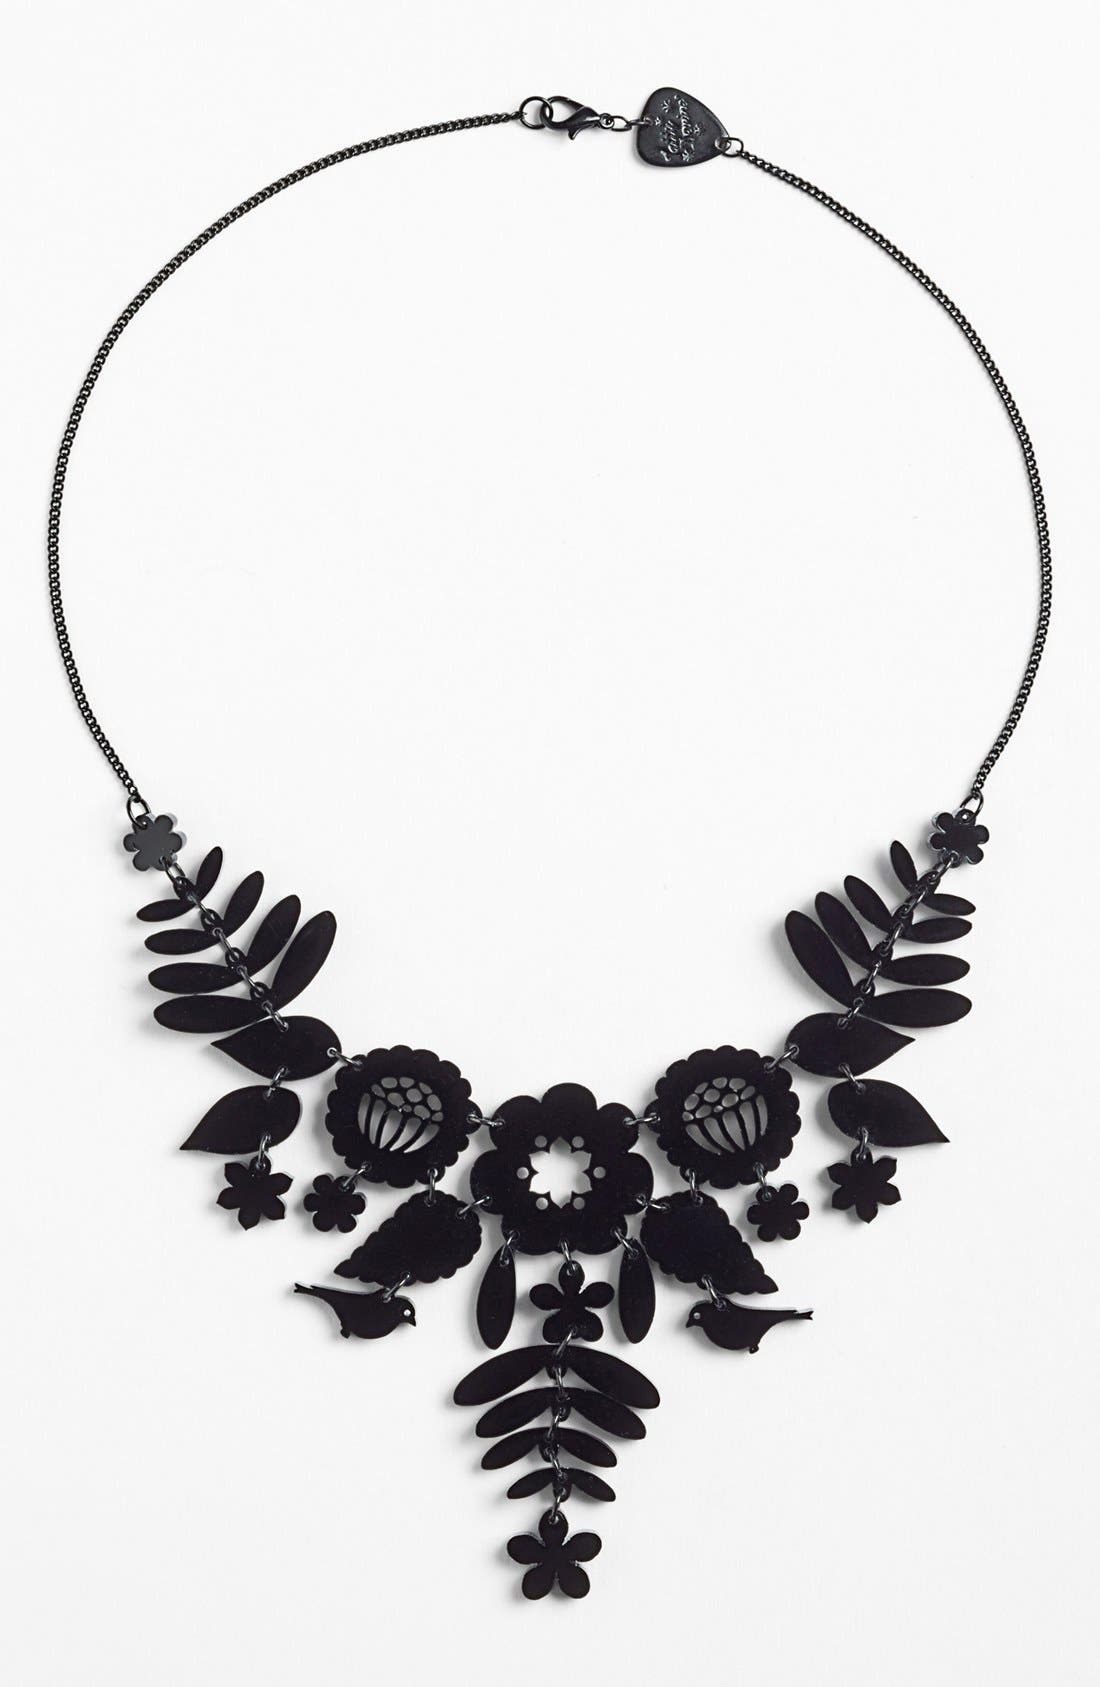 'Mexican Embroidery' Statement Necklace,                             Main thumbnail 1, color,                             001